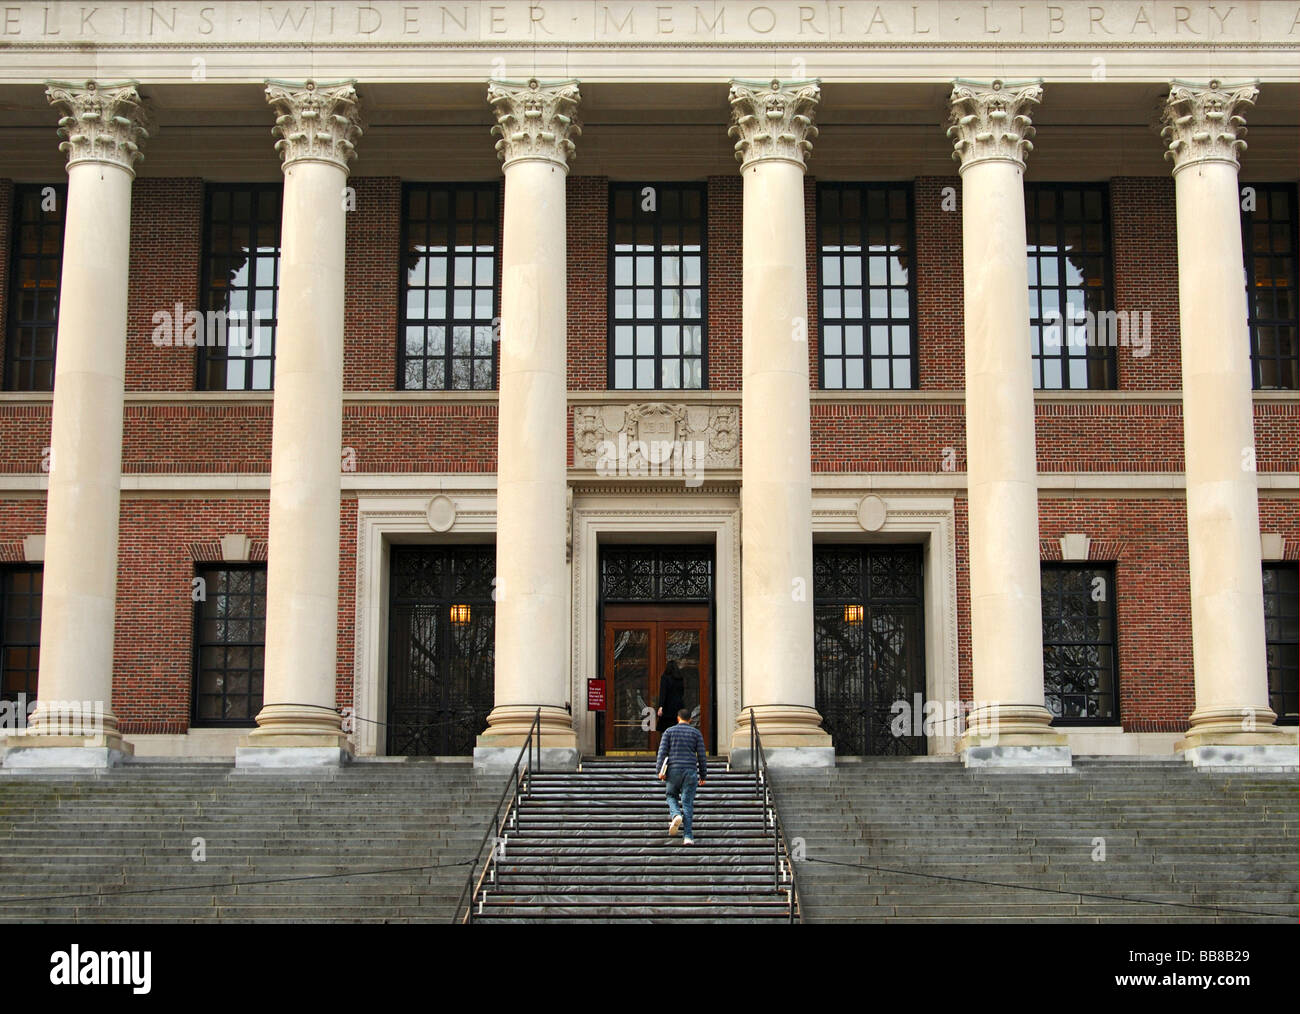 Students on their way to the Harry Elkins Widener Memorial Library, Harvard University, Cambridge, Massachusetts, - Stock Image